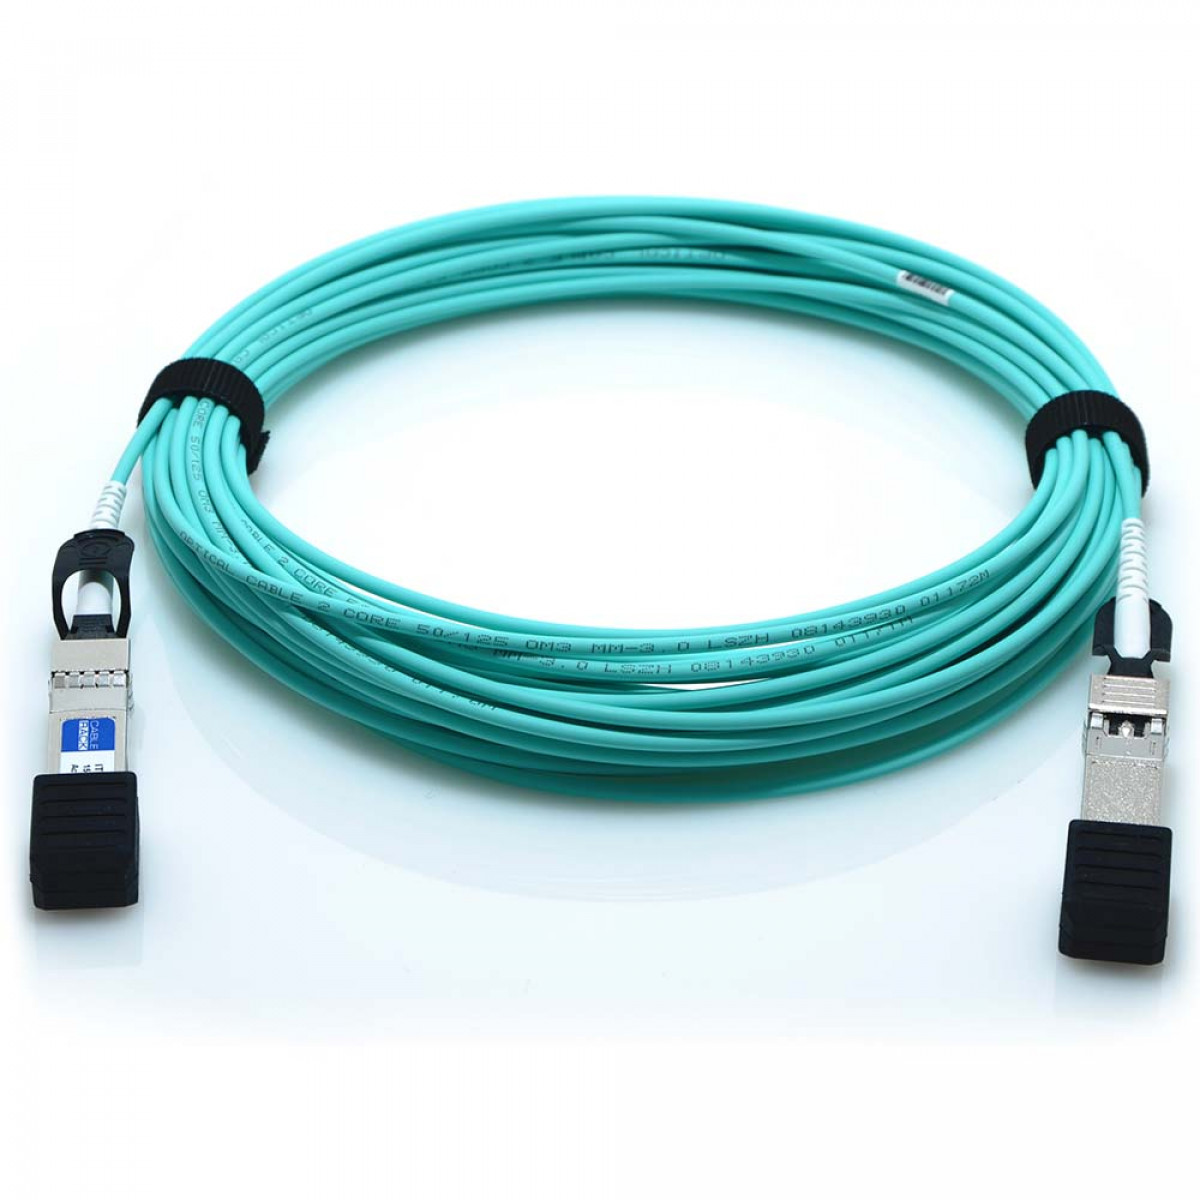 5m Sfp 10gb Fiber Optic Active Direct Attach Cable